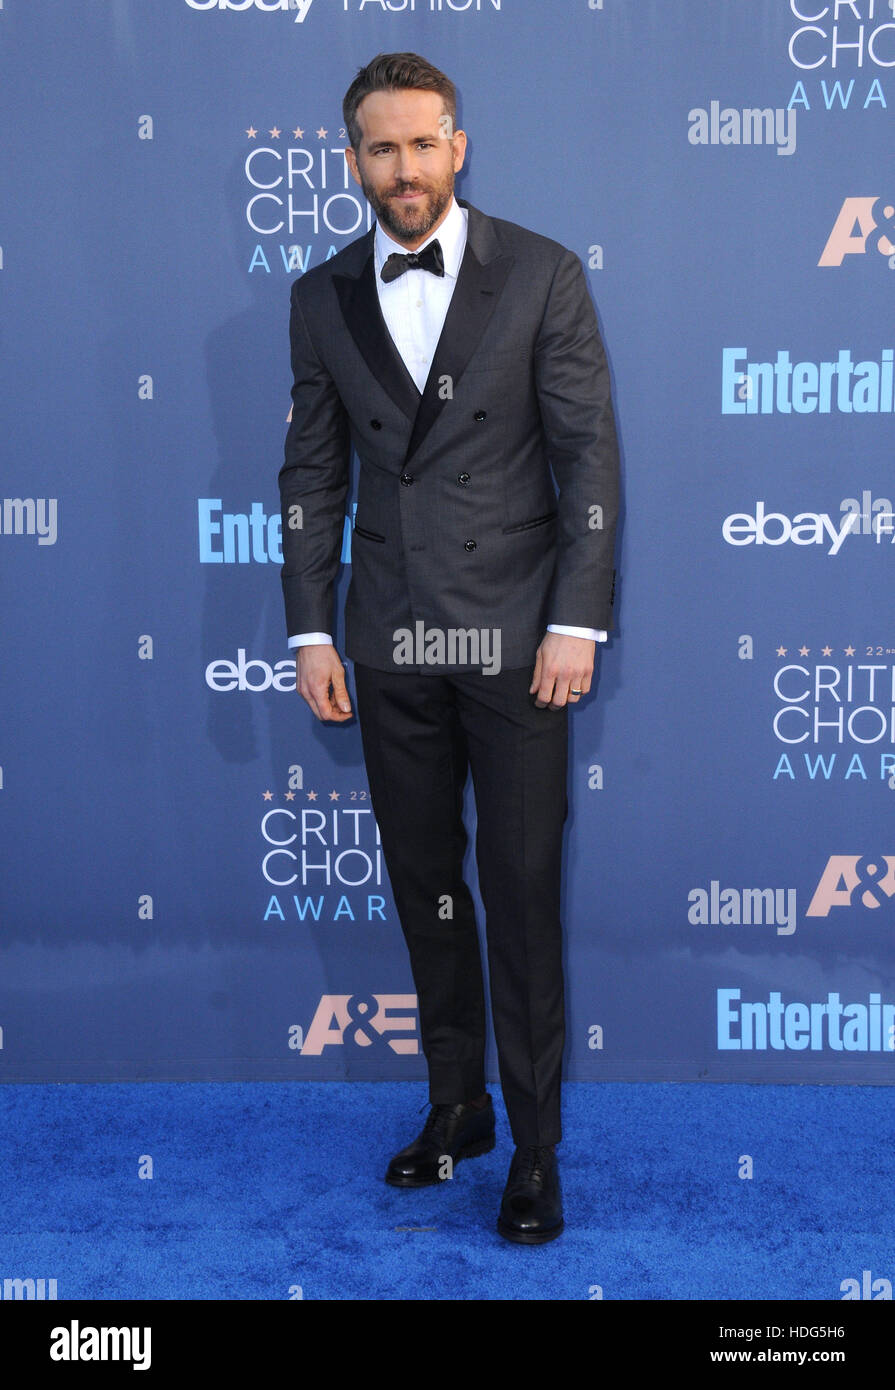 Santa Monica, California, USA. 11 dic, 2016. Ryan Reynolds. La 22ª Anual de Critics' Choice Awards celebrado Imagen De Stock